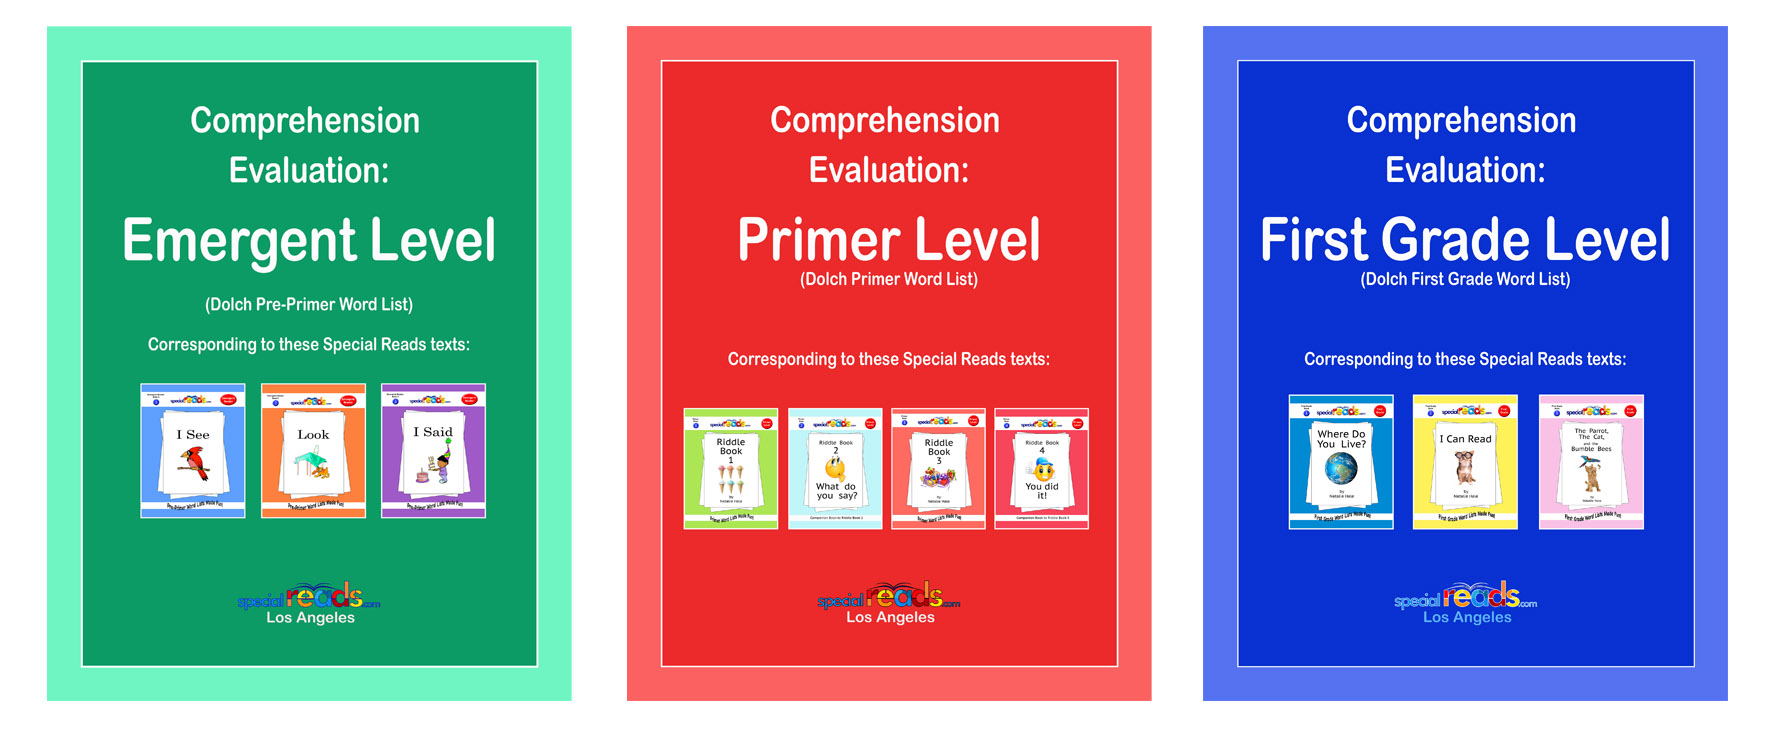 Comprehension Series Book Covers